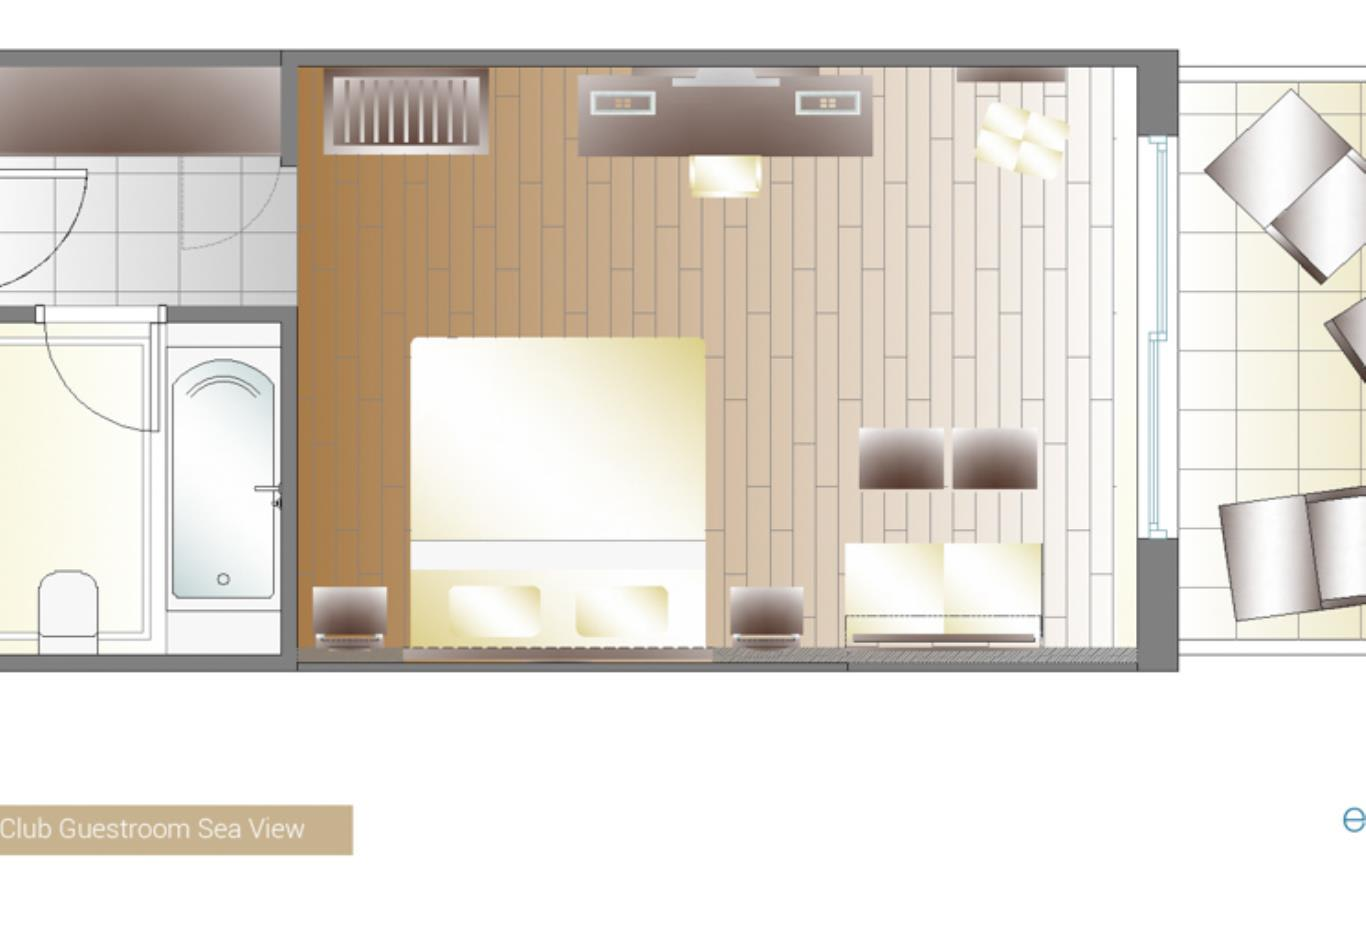 Elite Club guestroom sea view floorplan